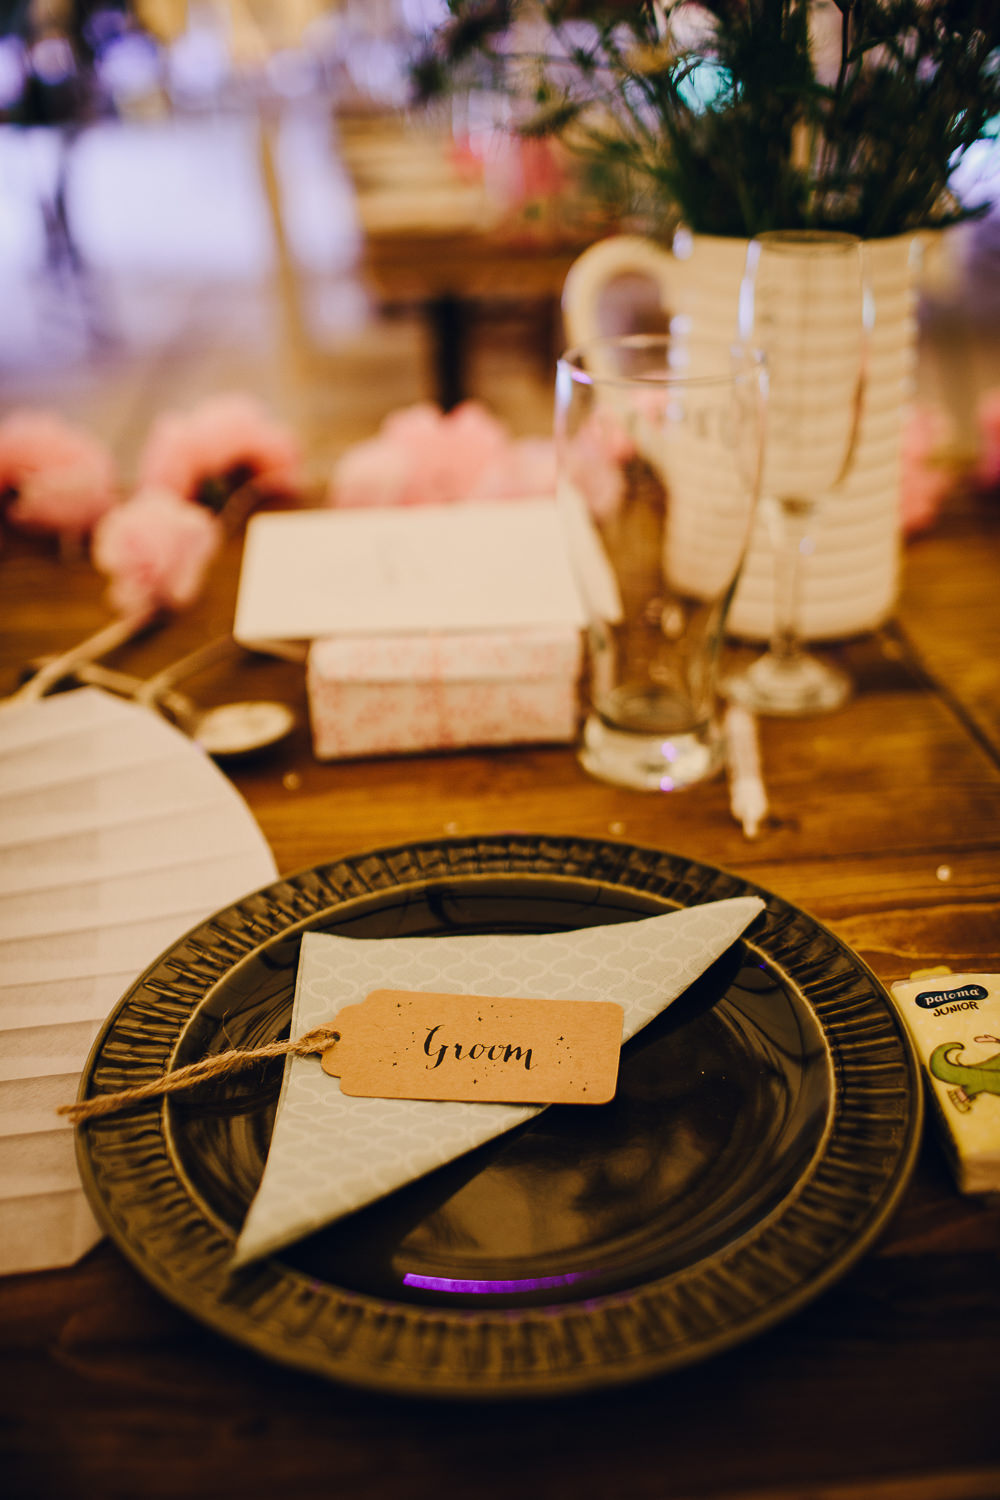 Place Setting Decor Luggage Tag Place Name Vintage Floral Napkin Alderford Lake Wedding Amy B Photography